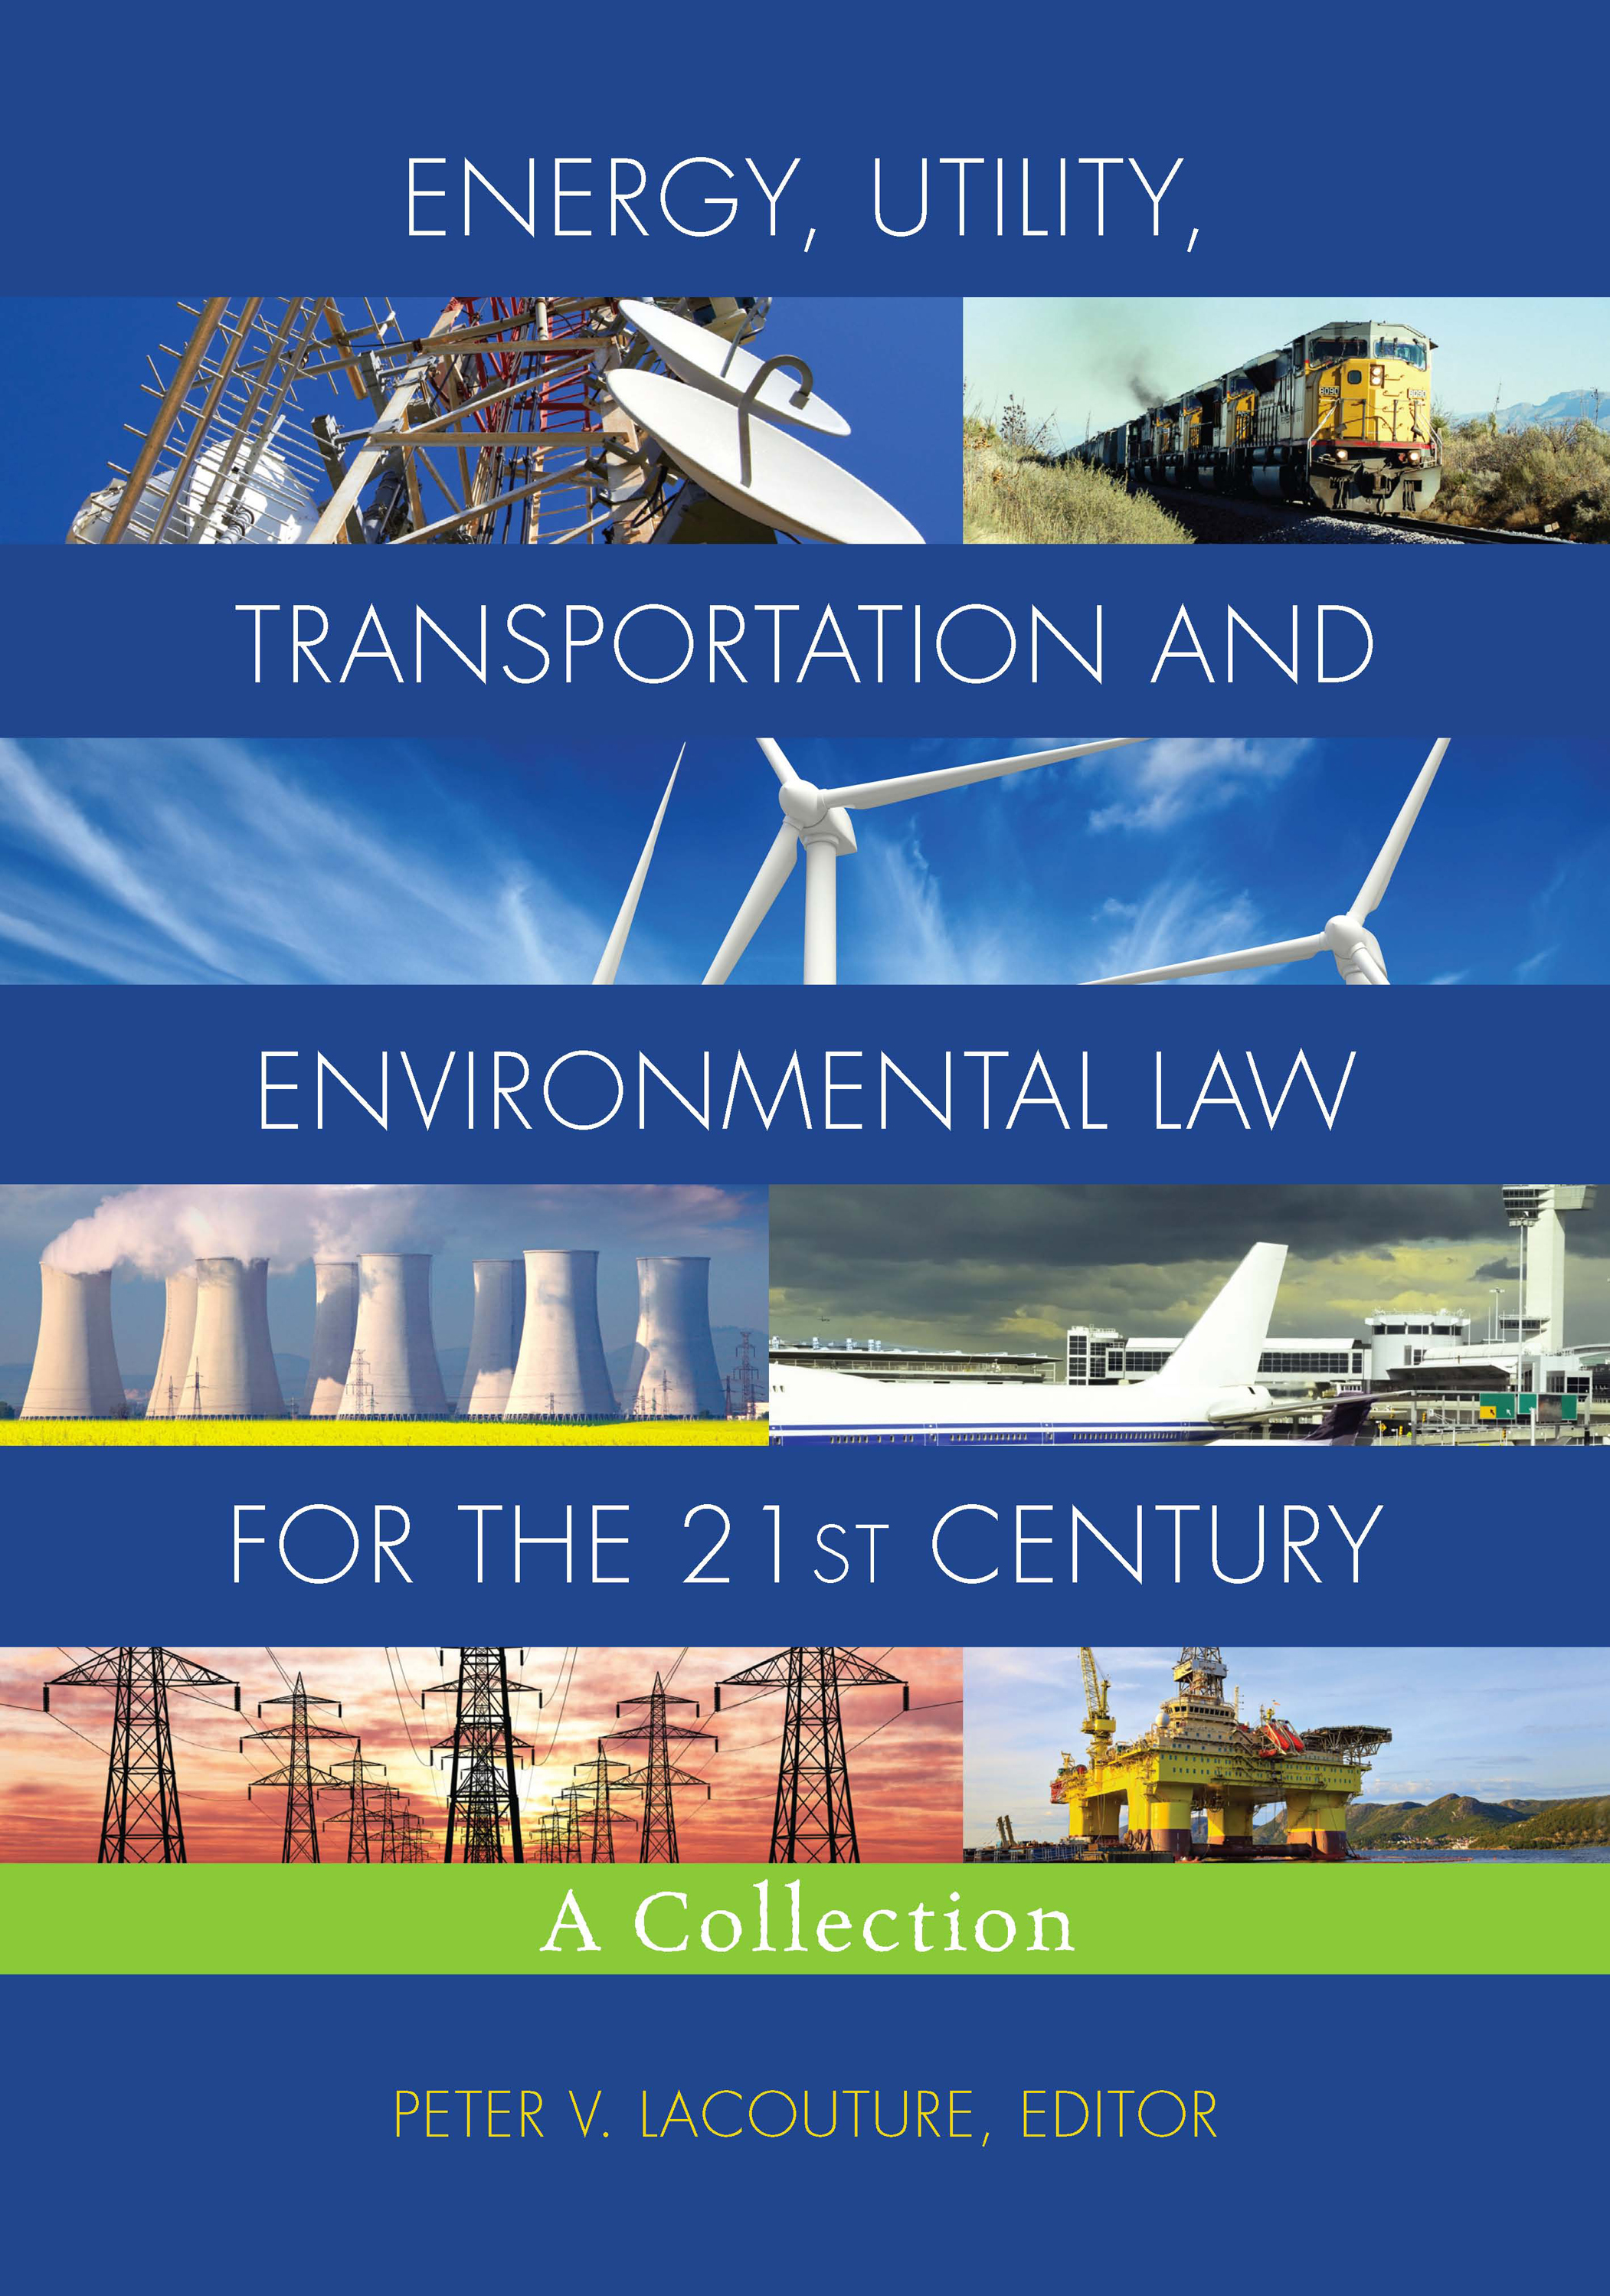 Energy, Utility, Transportation, and Environmental Law for the 21st Century